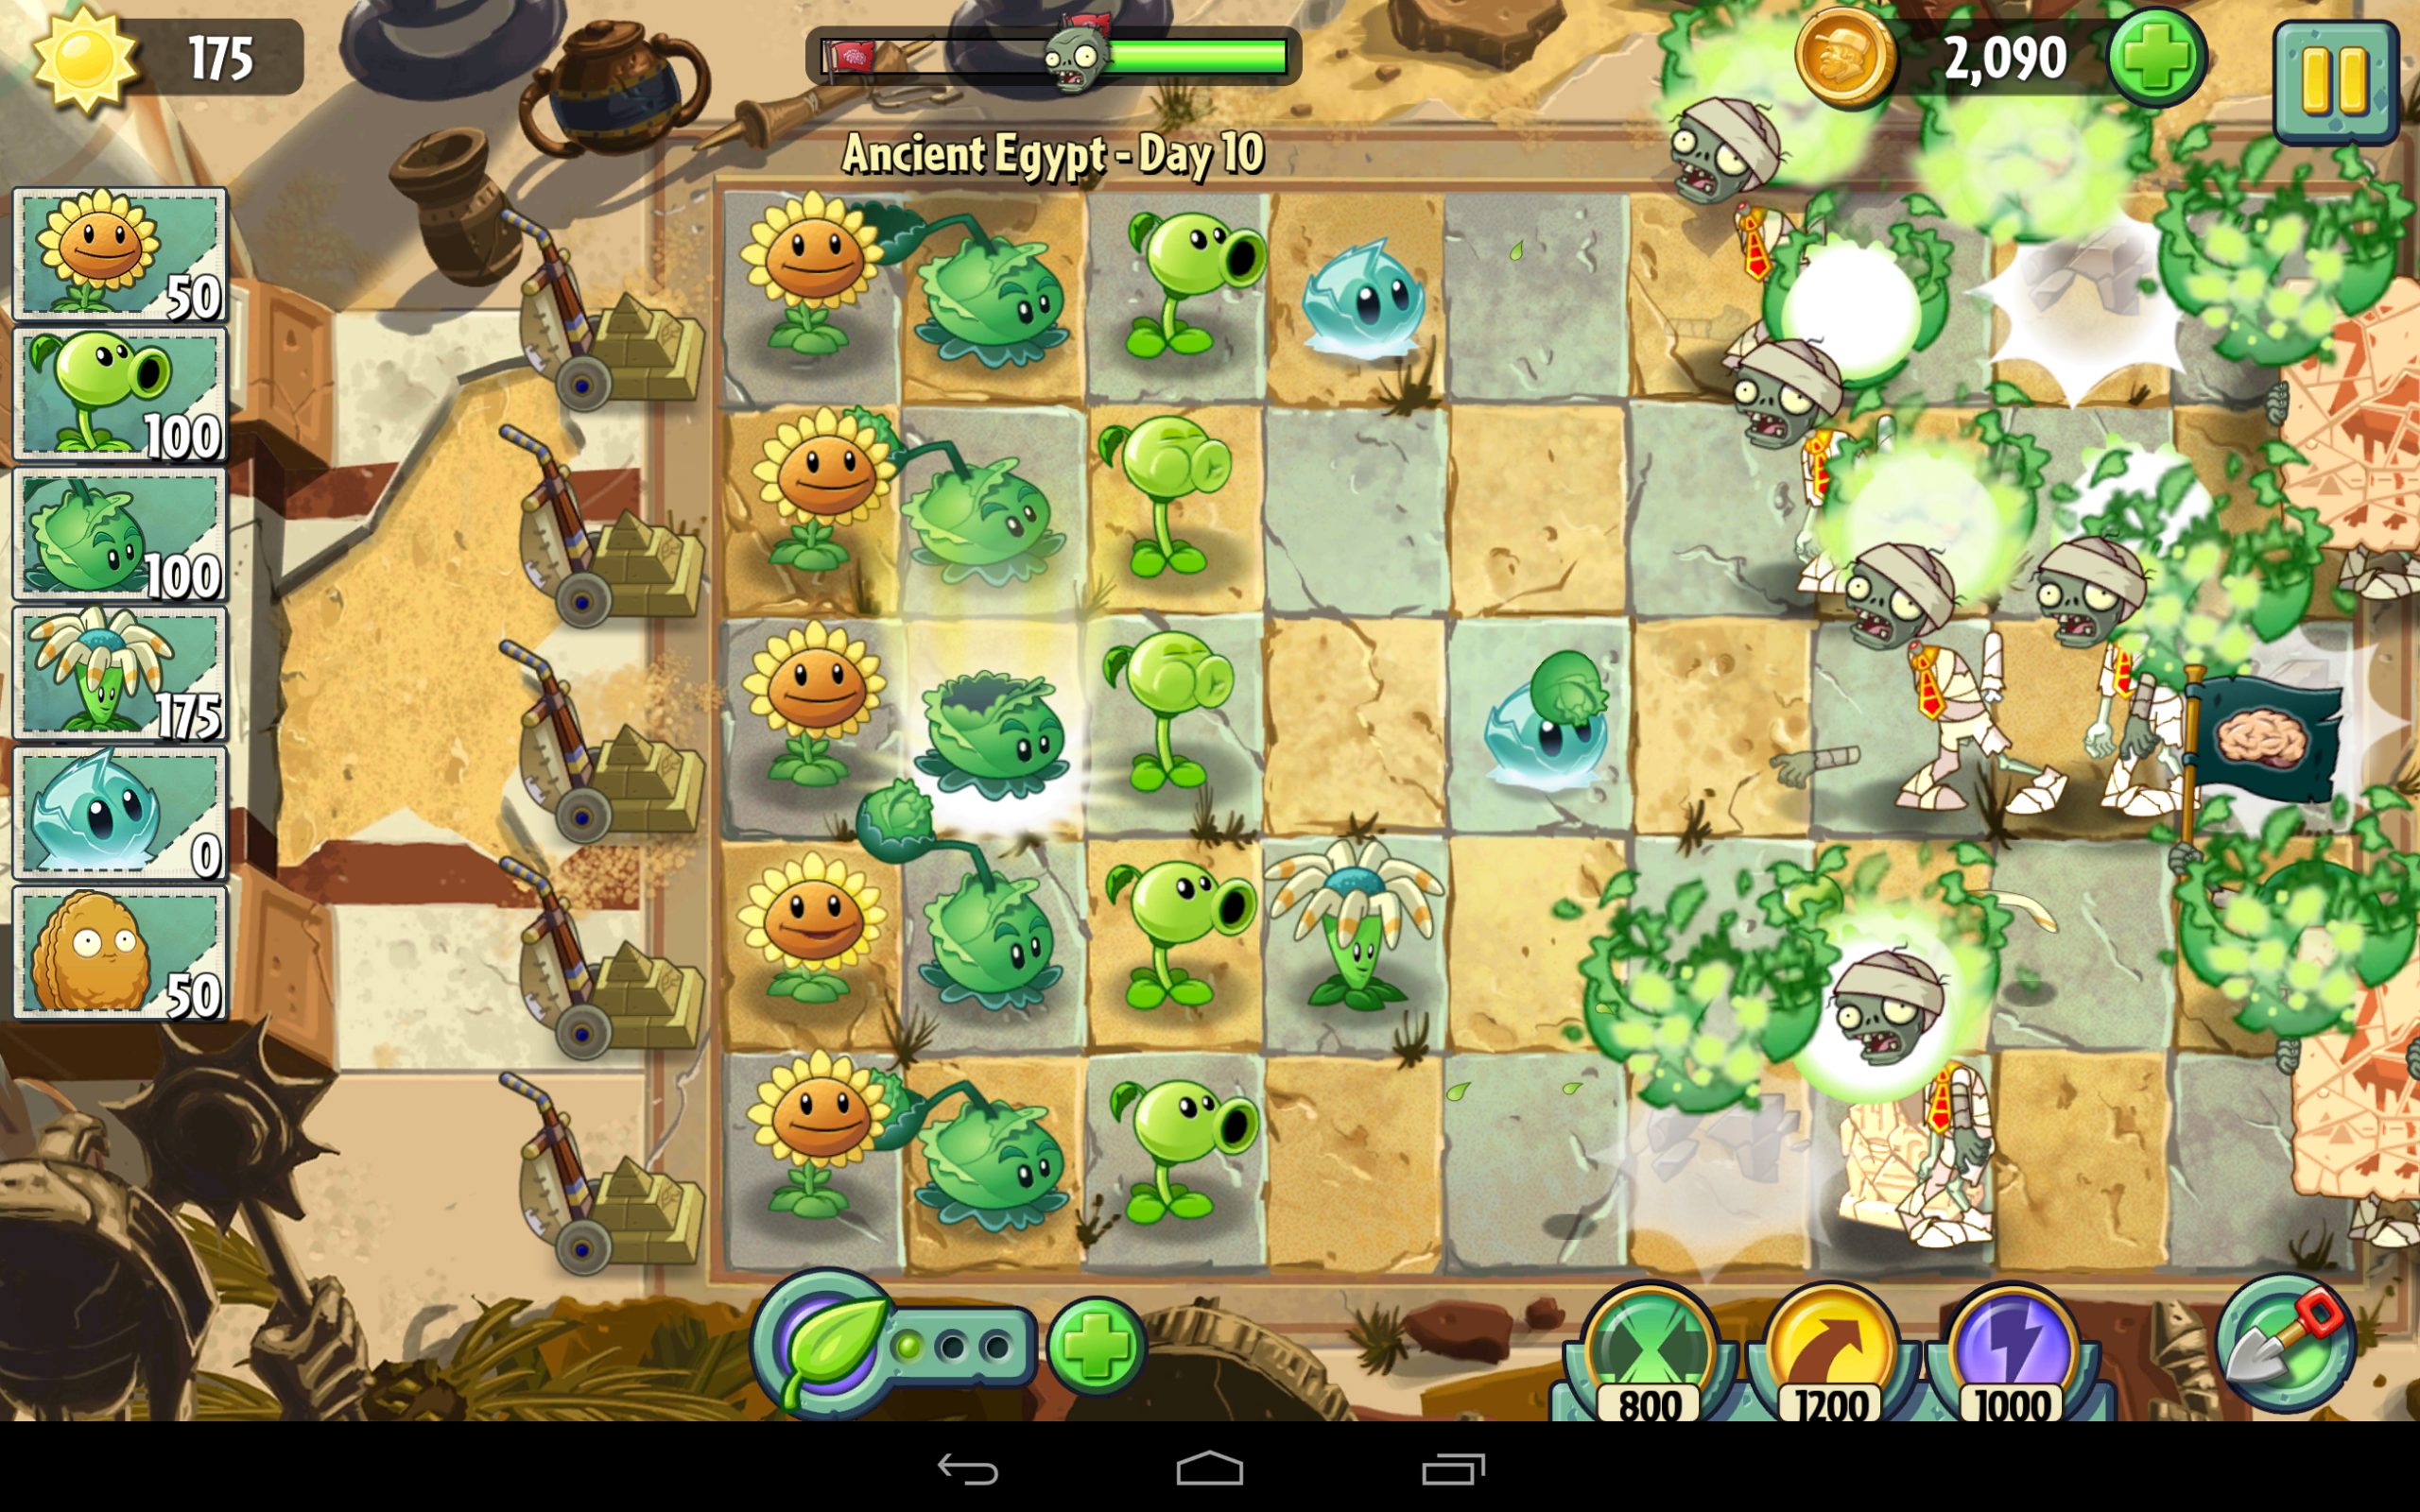 Plants vs zombies 2 review this time the zombies want your 2013 10 22 075151 voltagebd Gallery